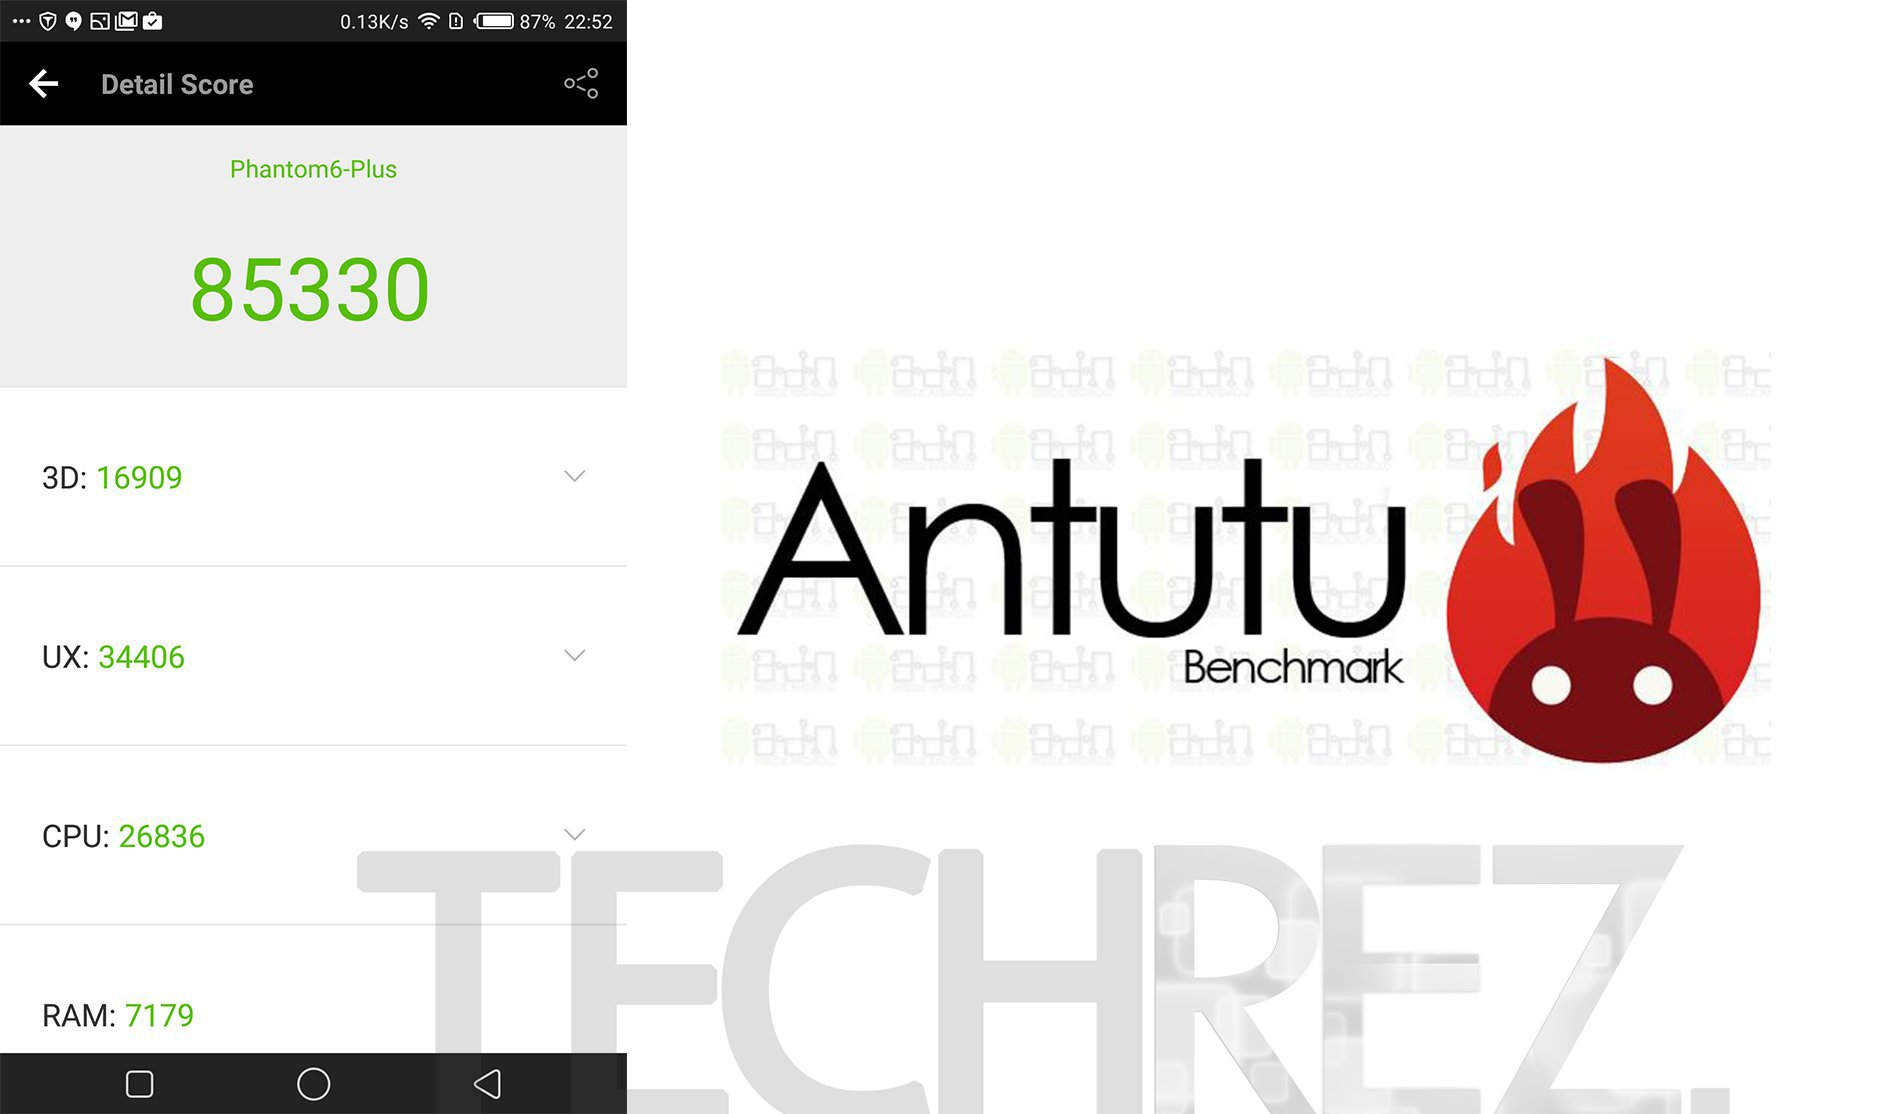 Tecno phantom benchmark tests